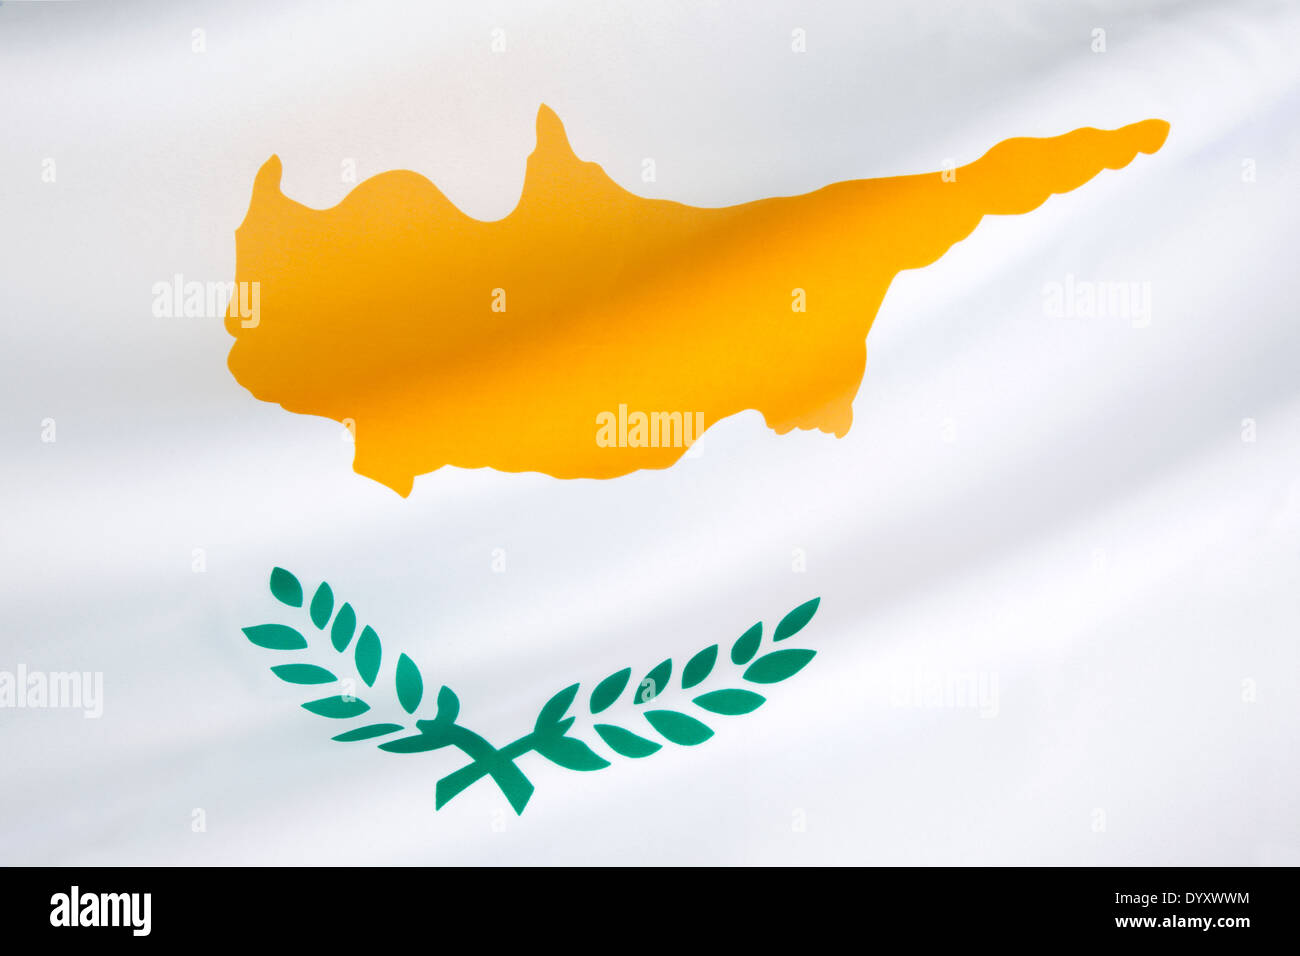 The national flag of Cyprus - Stock Image